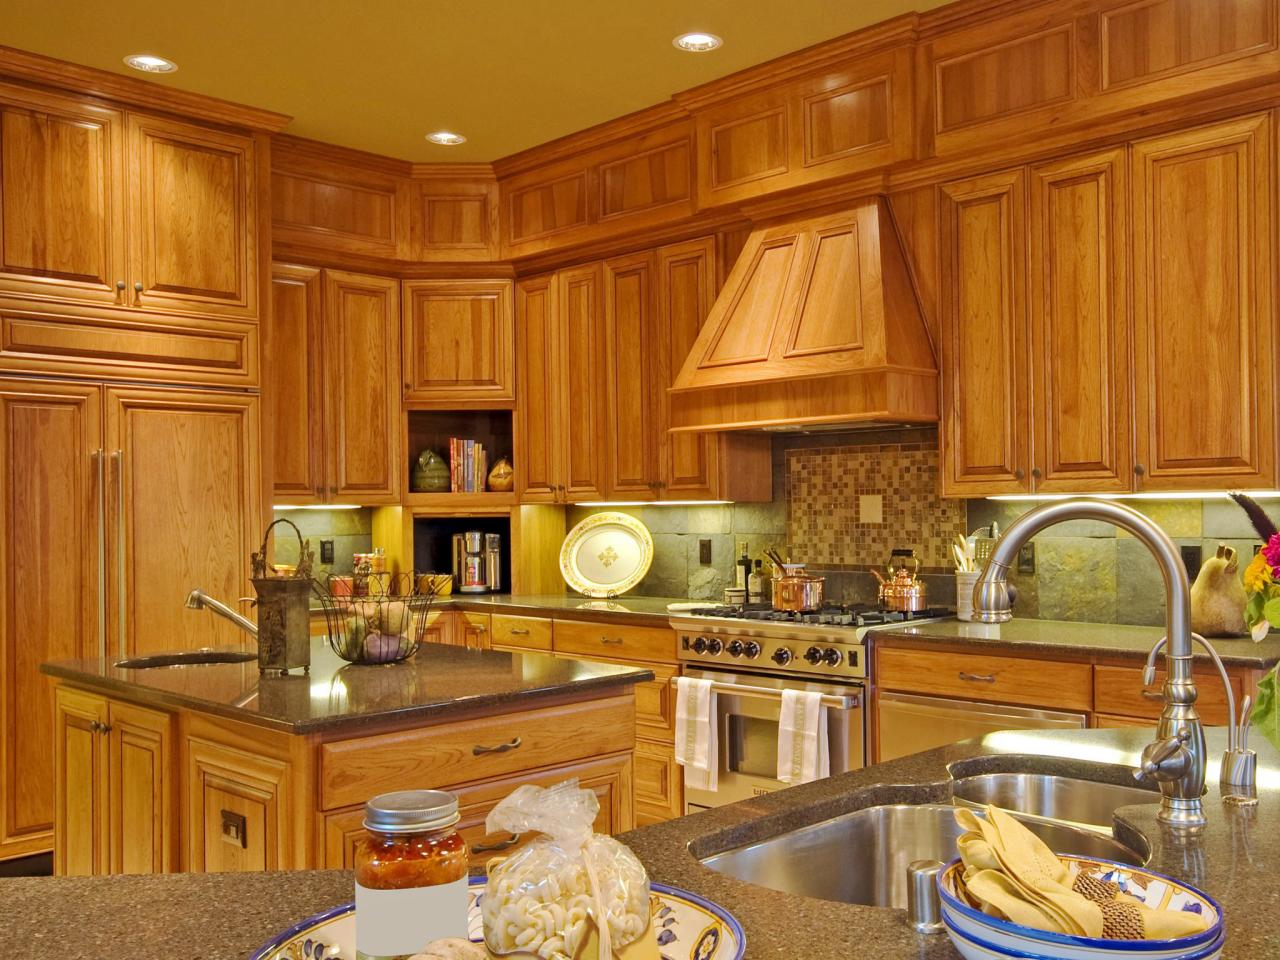 oak kitchen cabinets - In Style Kitchen Cabinets